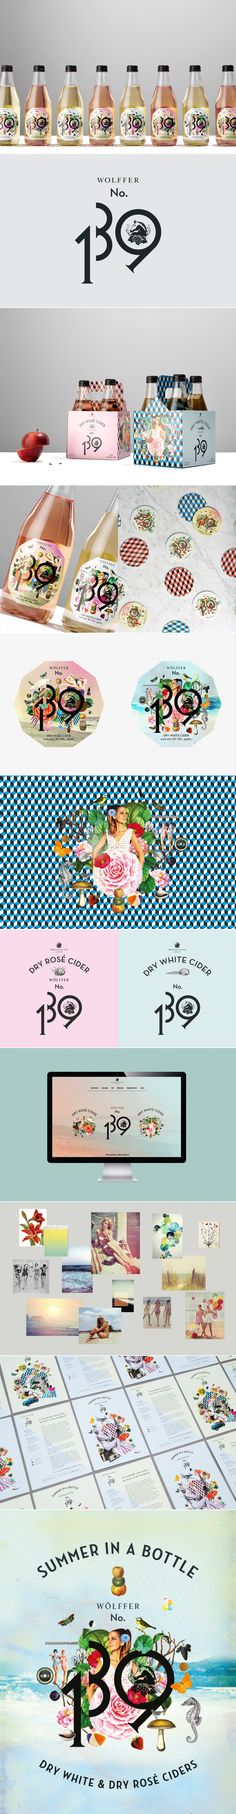 Bohemian and Exuberant Wolffer 139 Cider — The Dieline | Packaging & Branding Design & Innovation News